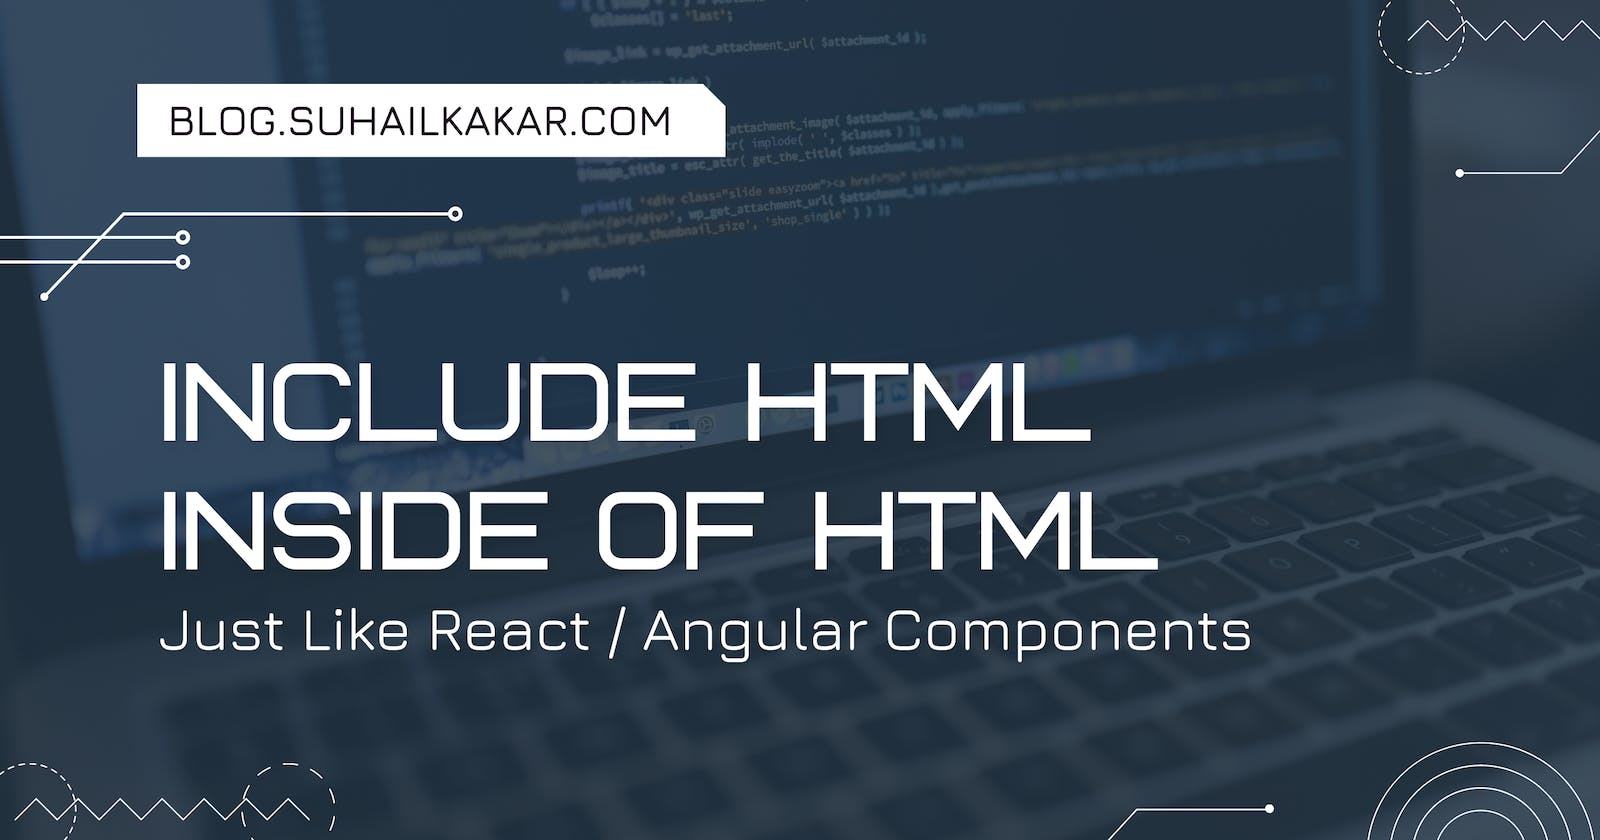 Include HTML Inside of HTML - Just Like React Components